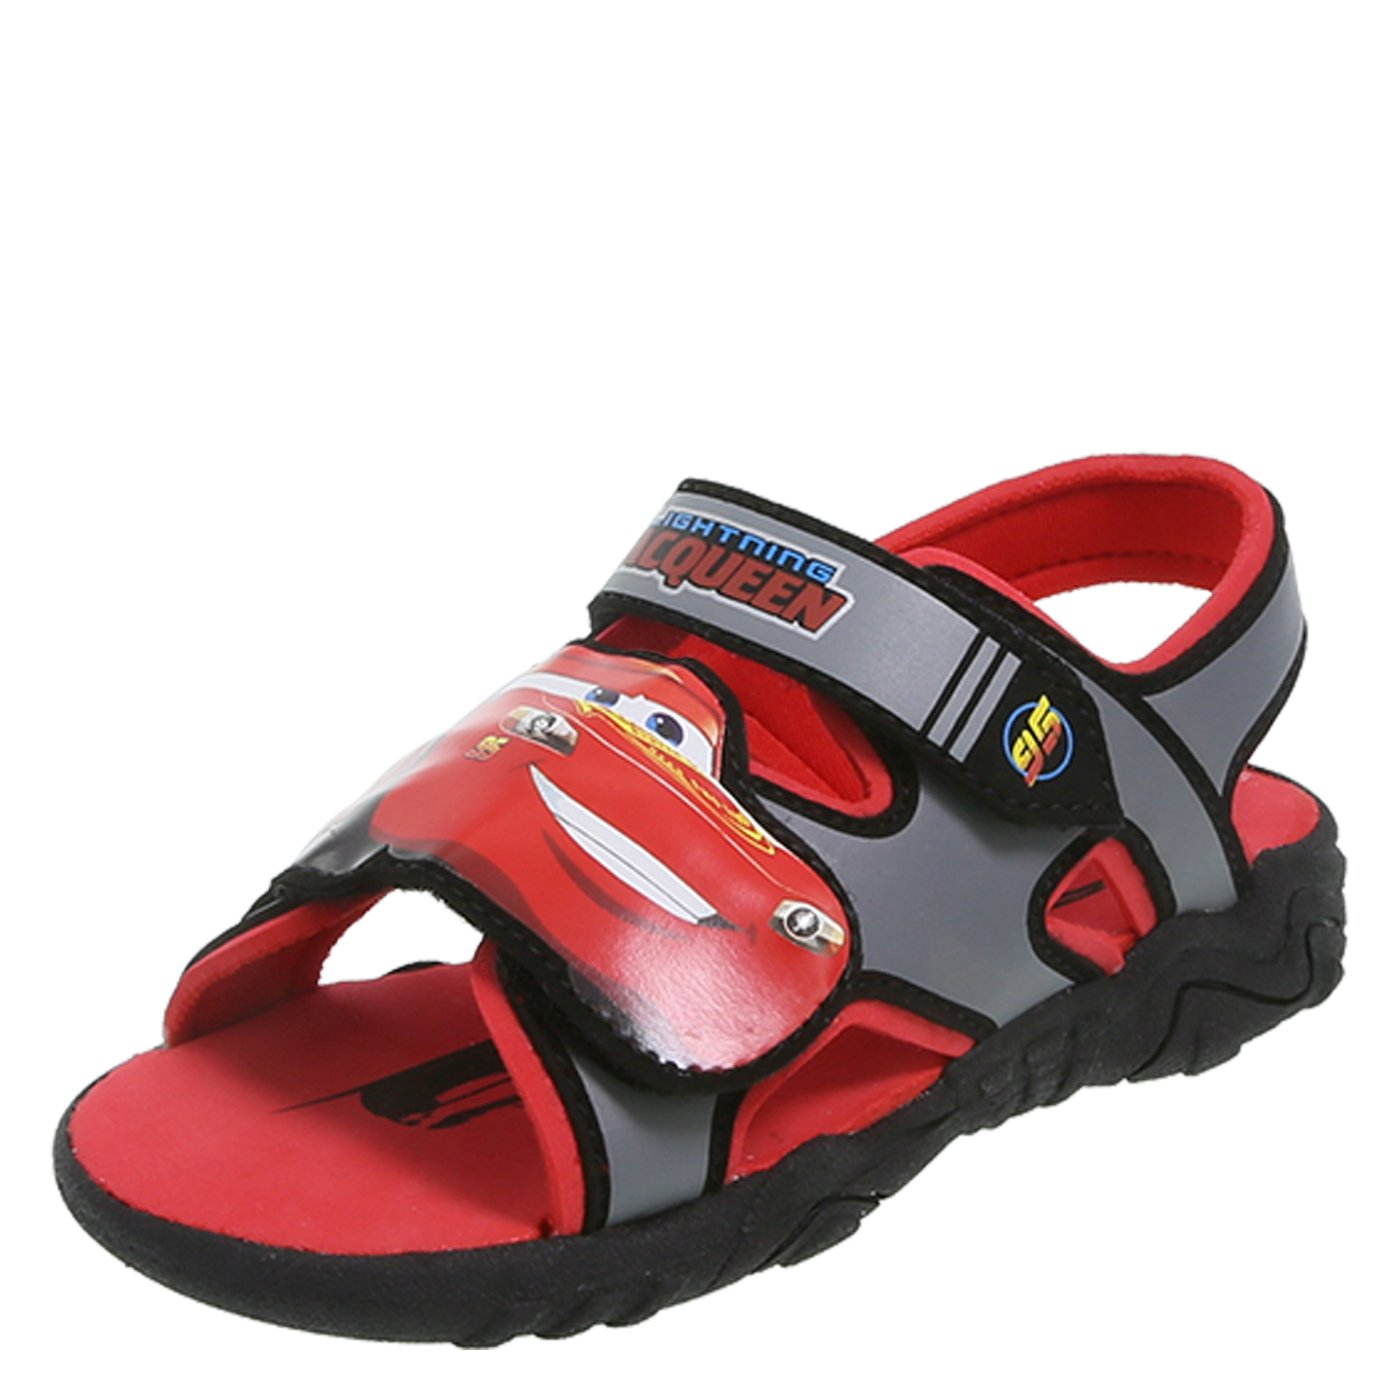 Disney CARS Cars Boys' Toddler Cars Lighted Sport Sandal 079575-Parent